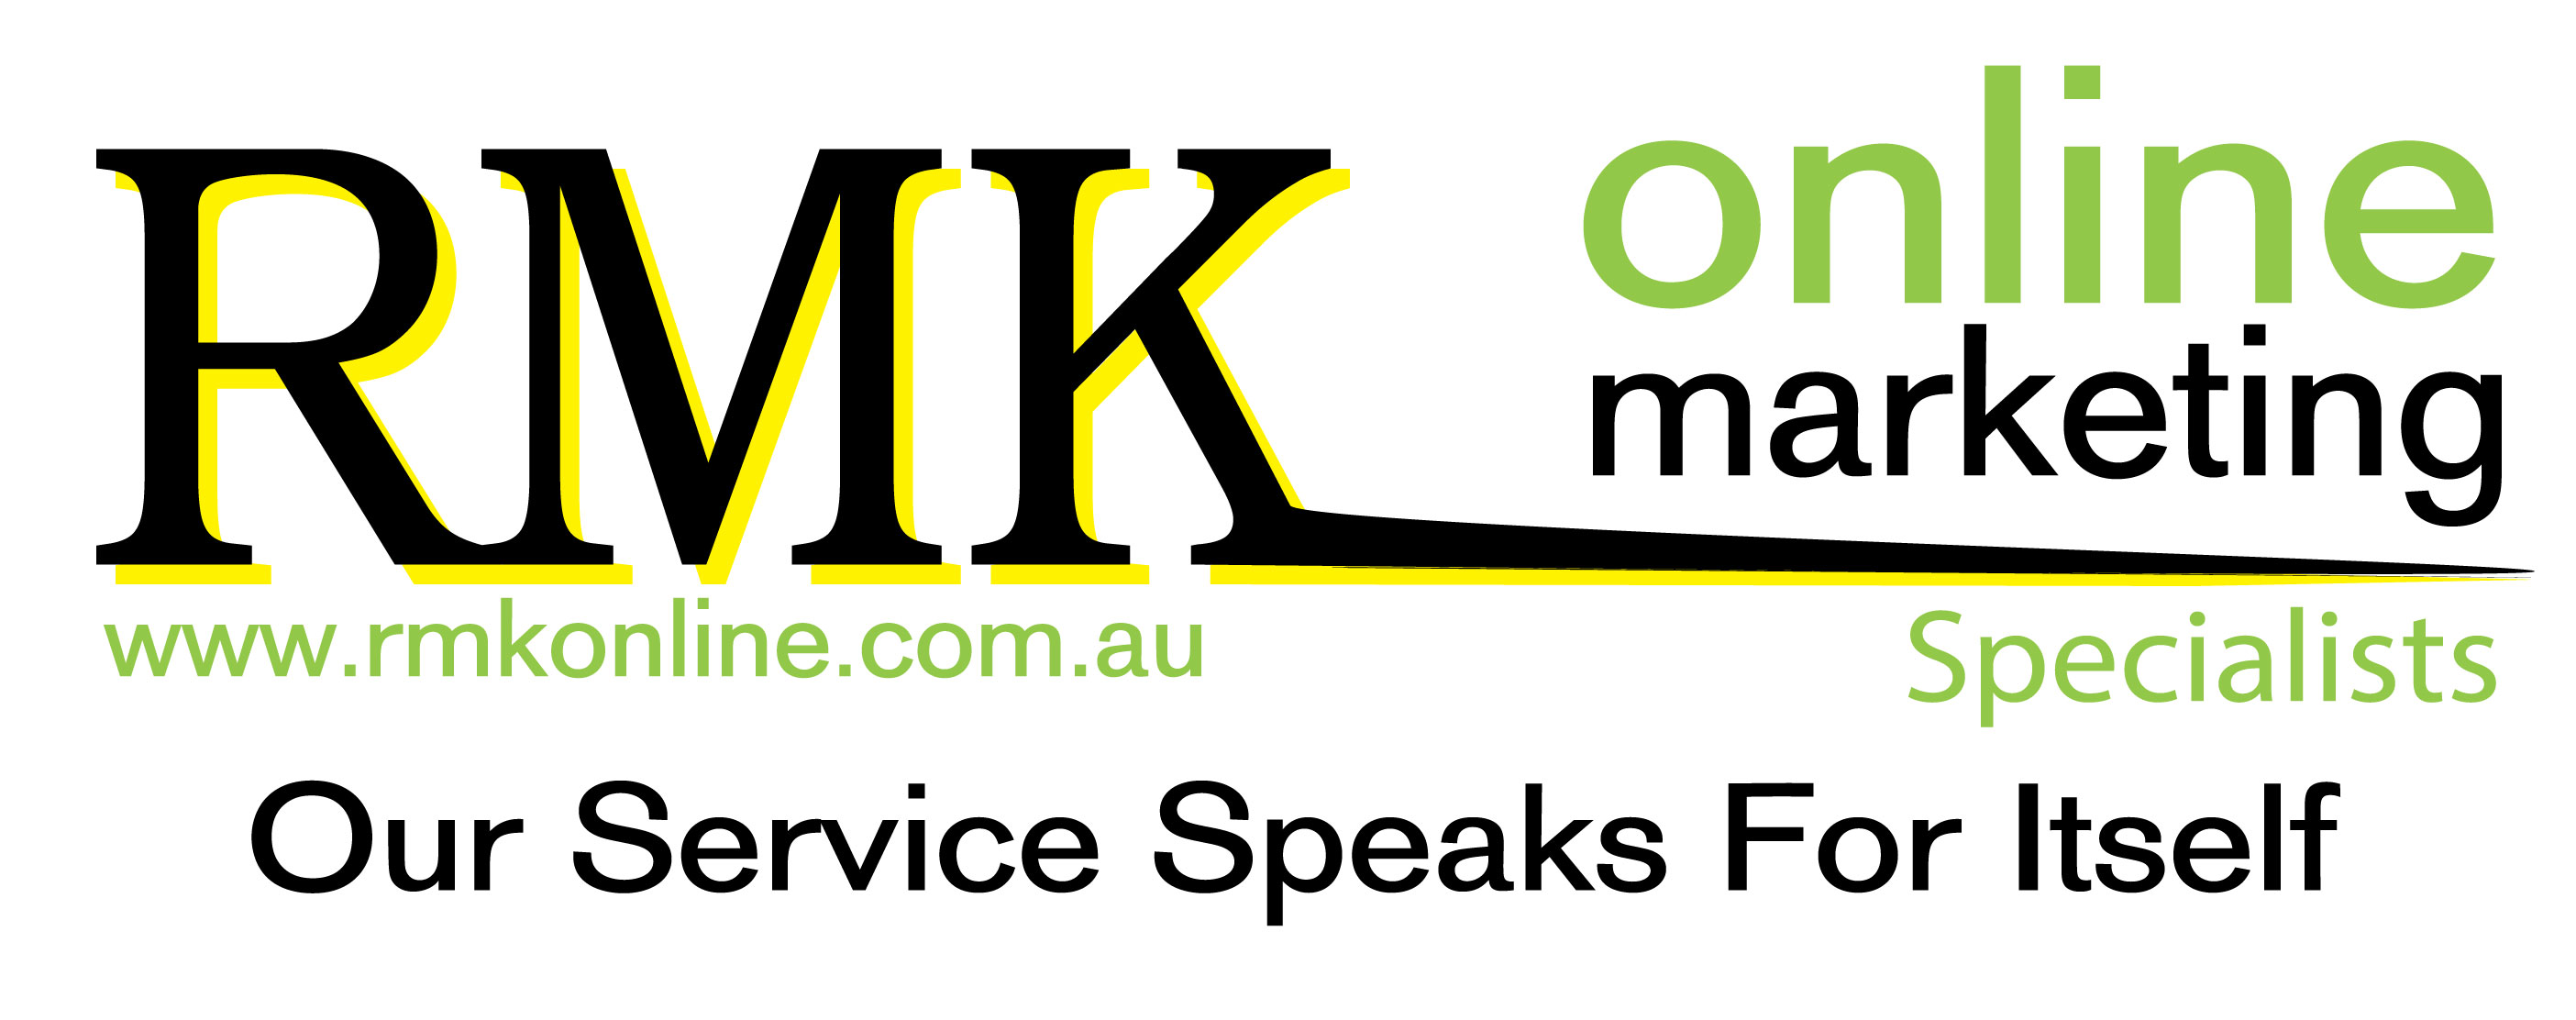 RMK Online Marketing - BRINGING THE WORLD TO YOU!